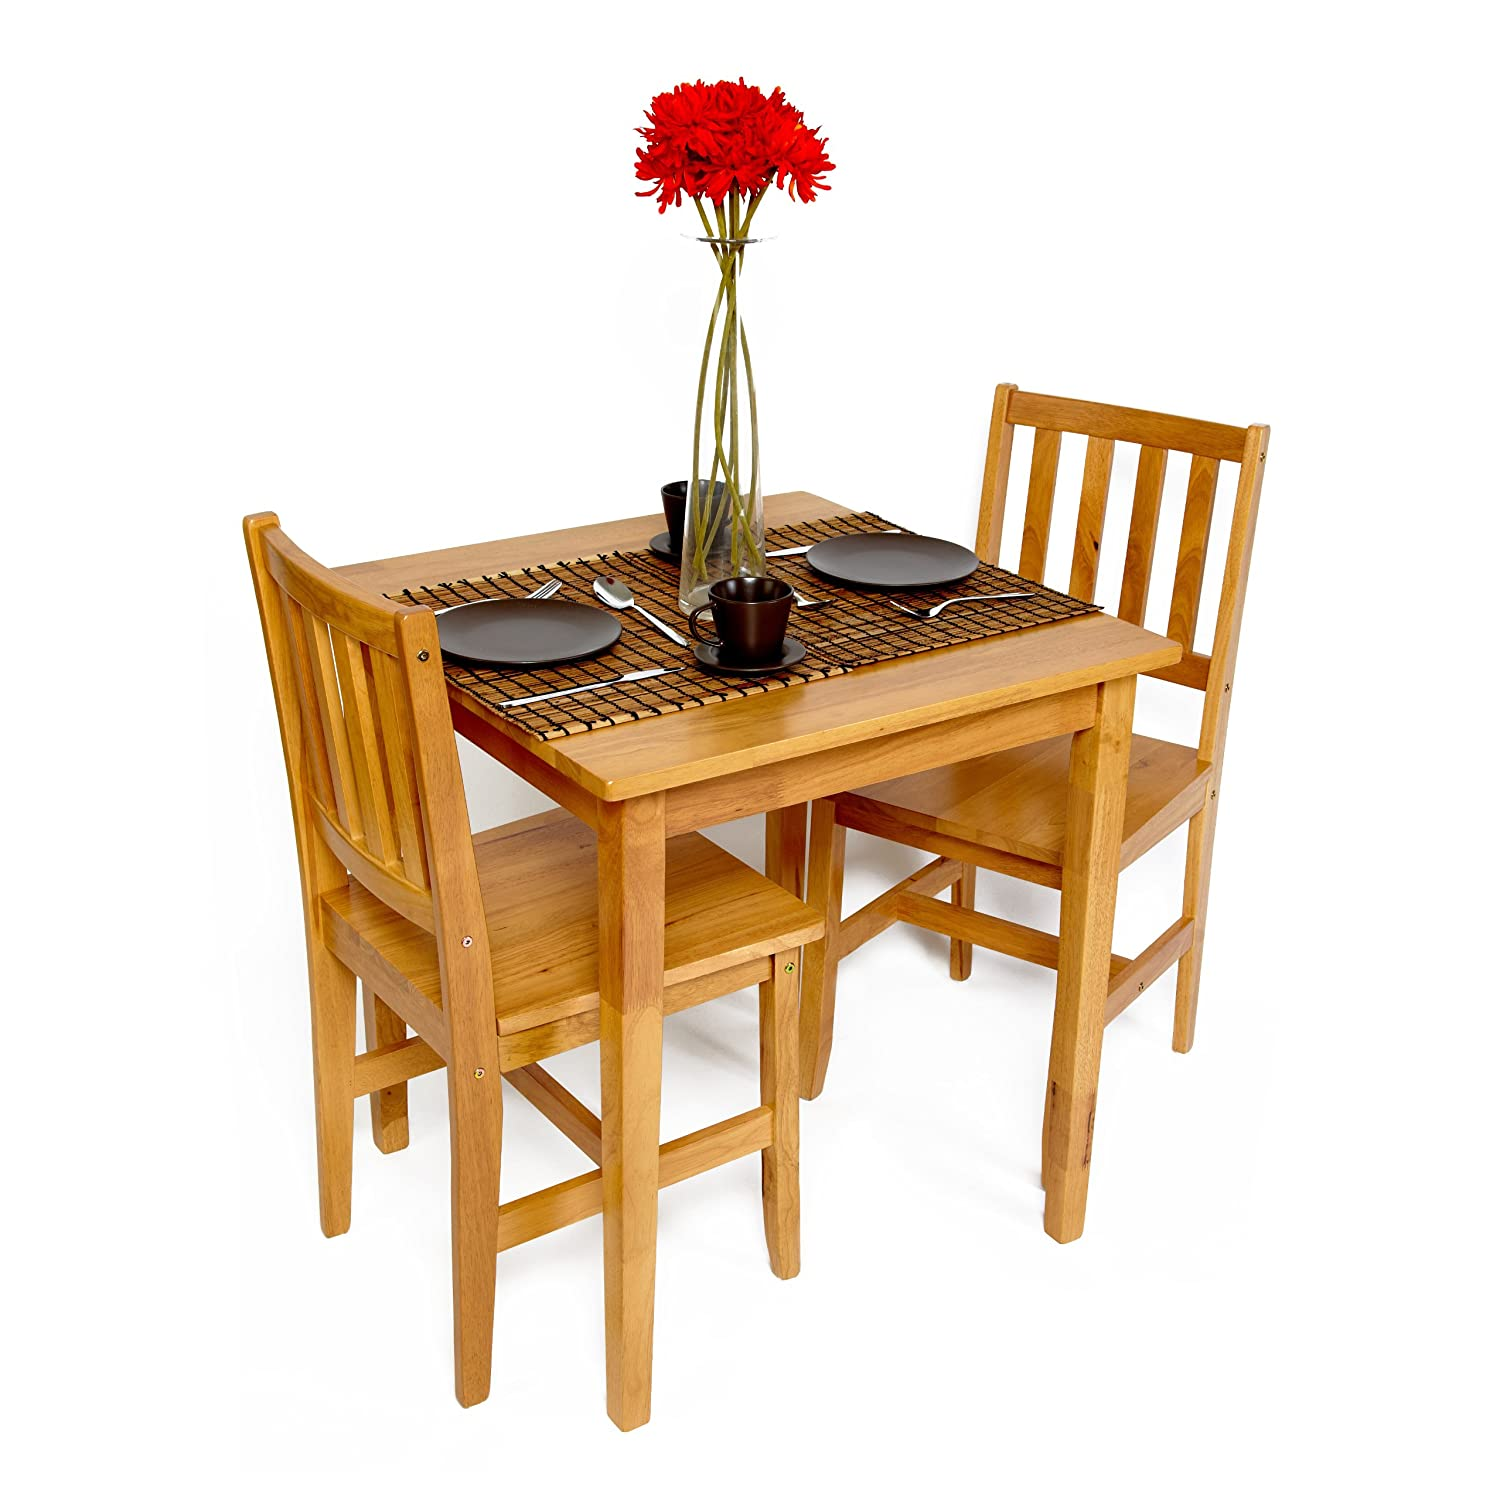 Table and chairs set dining bistro small cafe tables wood for Kitchen table and chairs